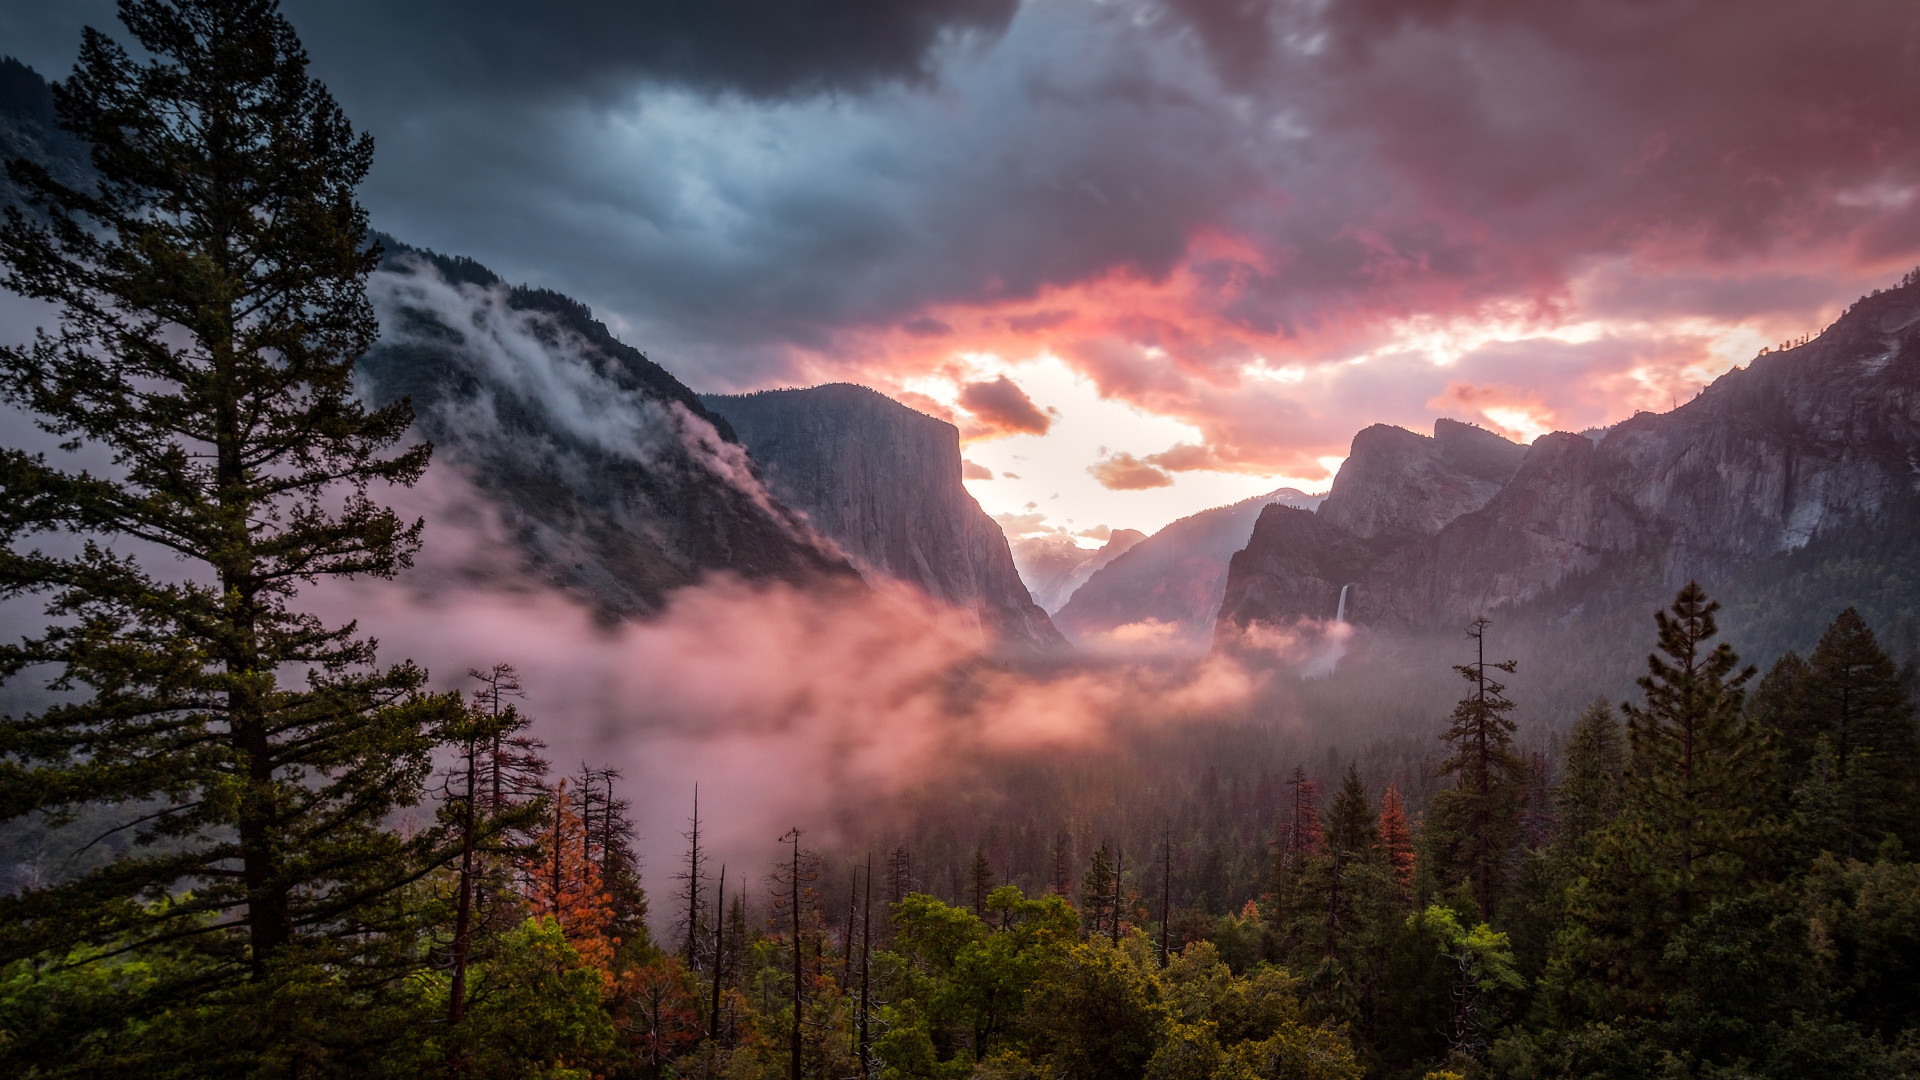 Landscape from Yosemite National Park | 1920x1080 wallpaper